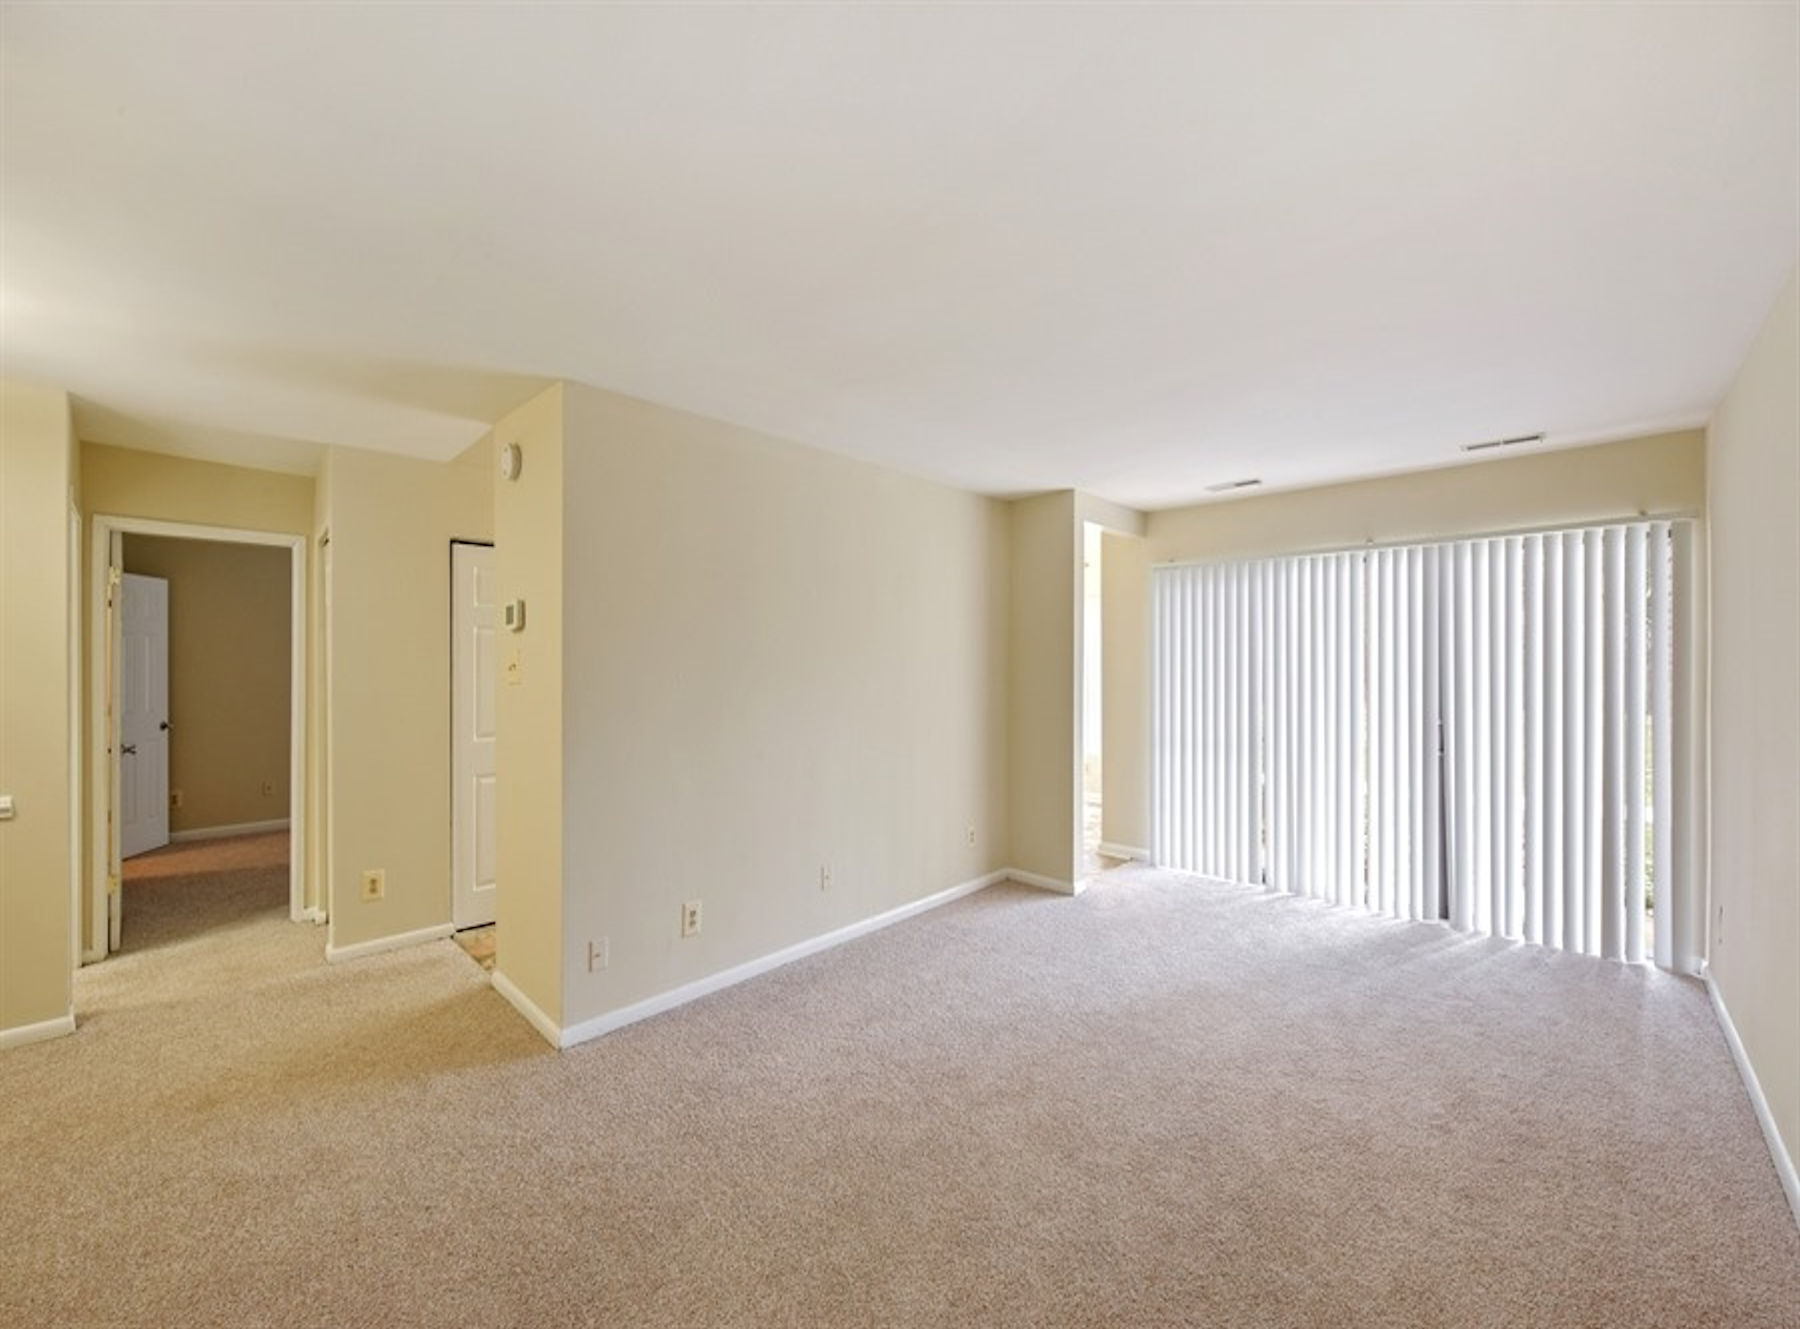 Model living room with large windows, window coverings, carpeting, and two tone paint.